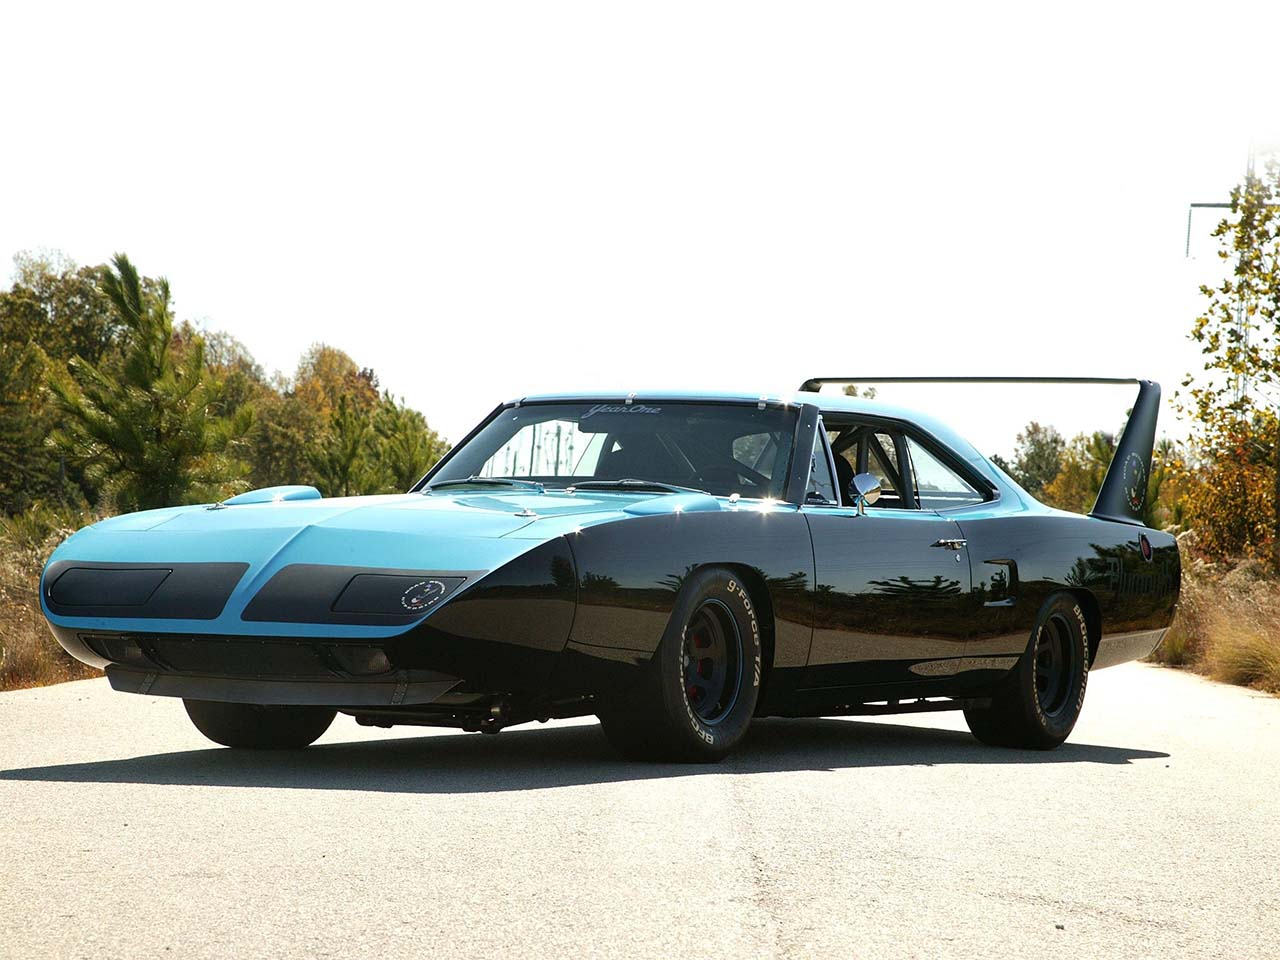 20 Classic U0026 Badass Muscle Cars That Will Never Get Old #5: Plymouth Super